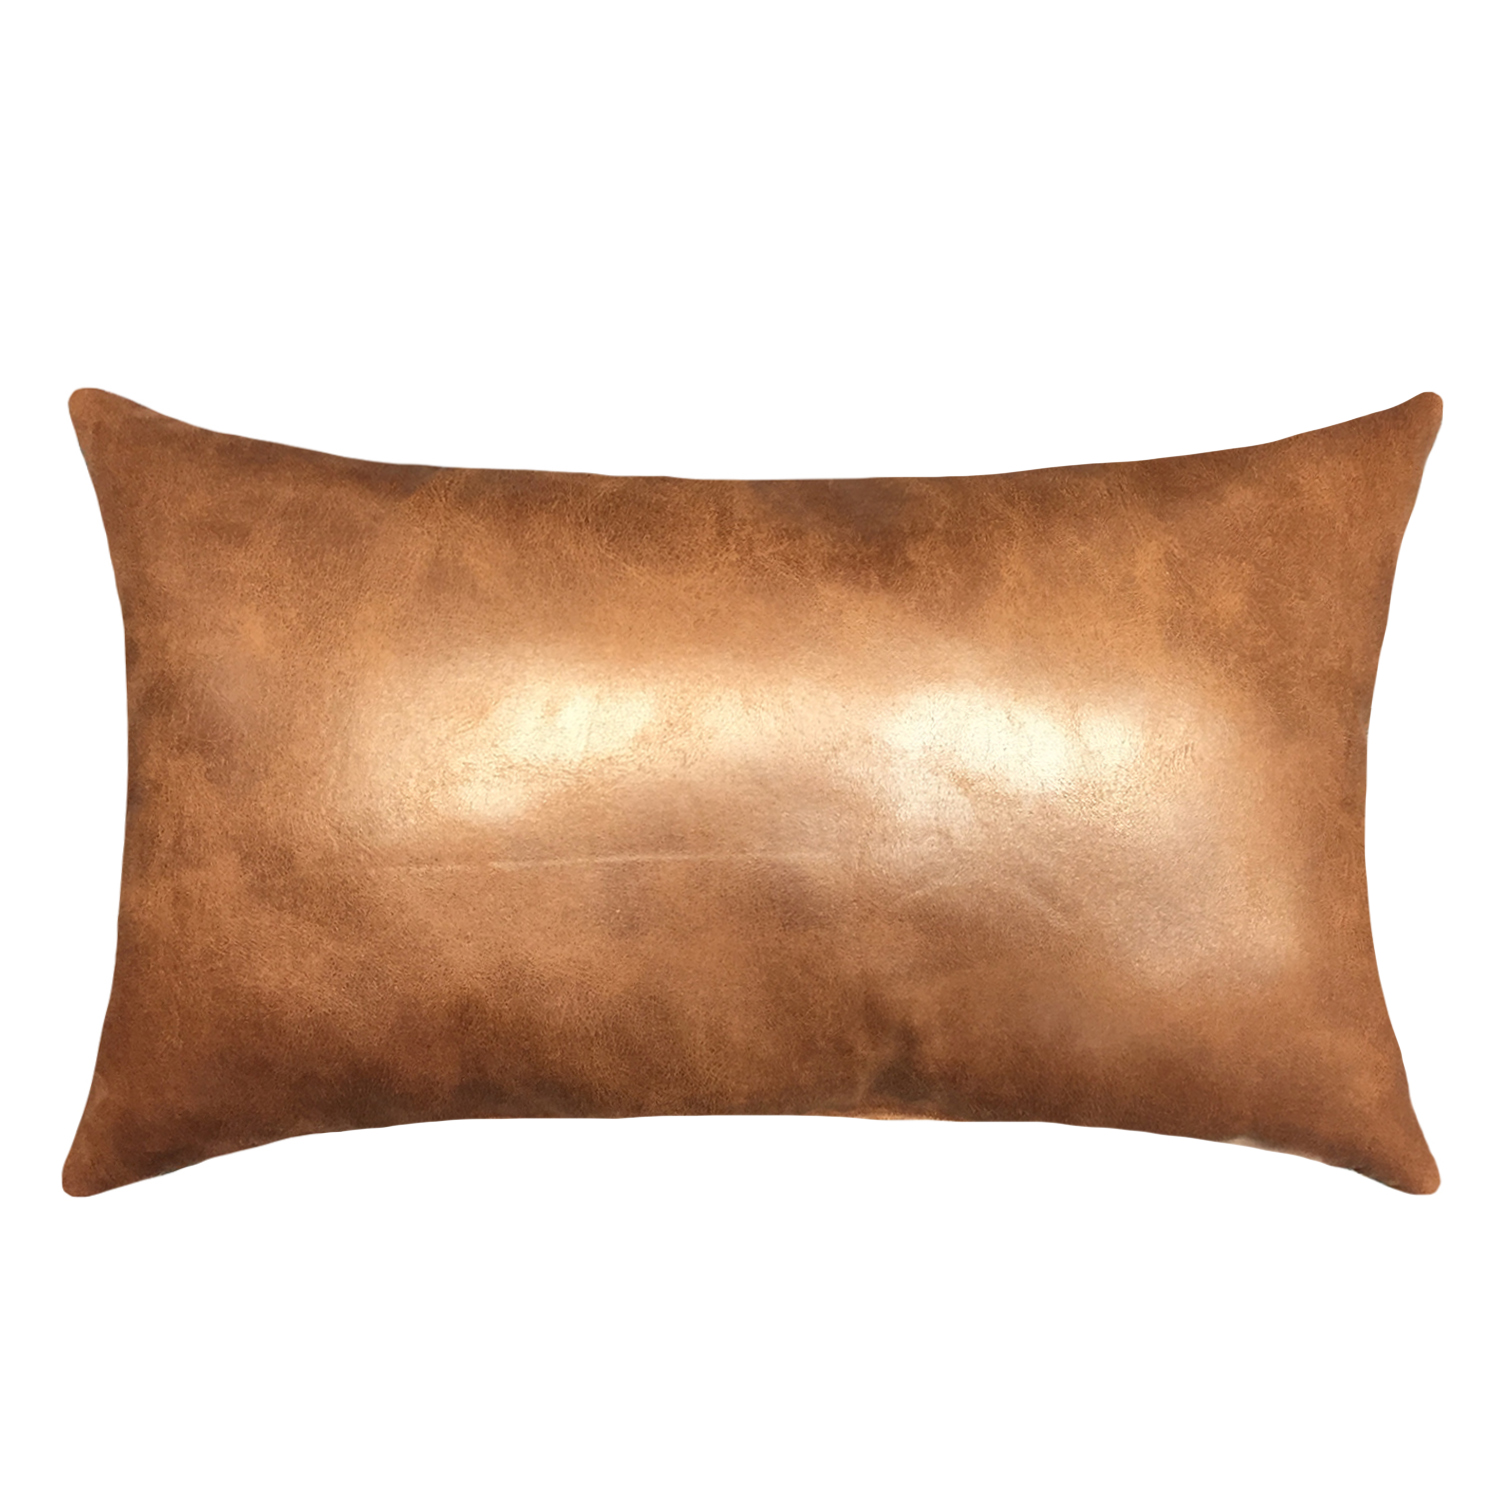 mainstays oblong faux leather decorative throw pillow 15 x 24 brown